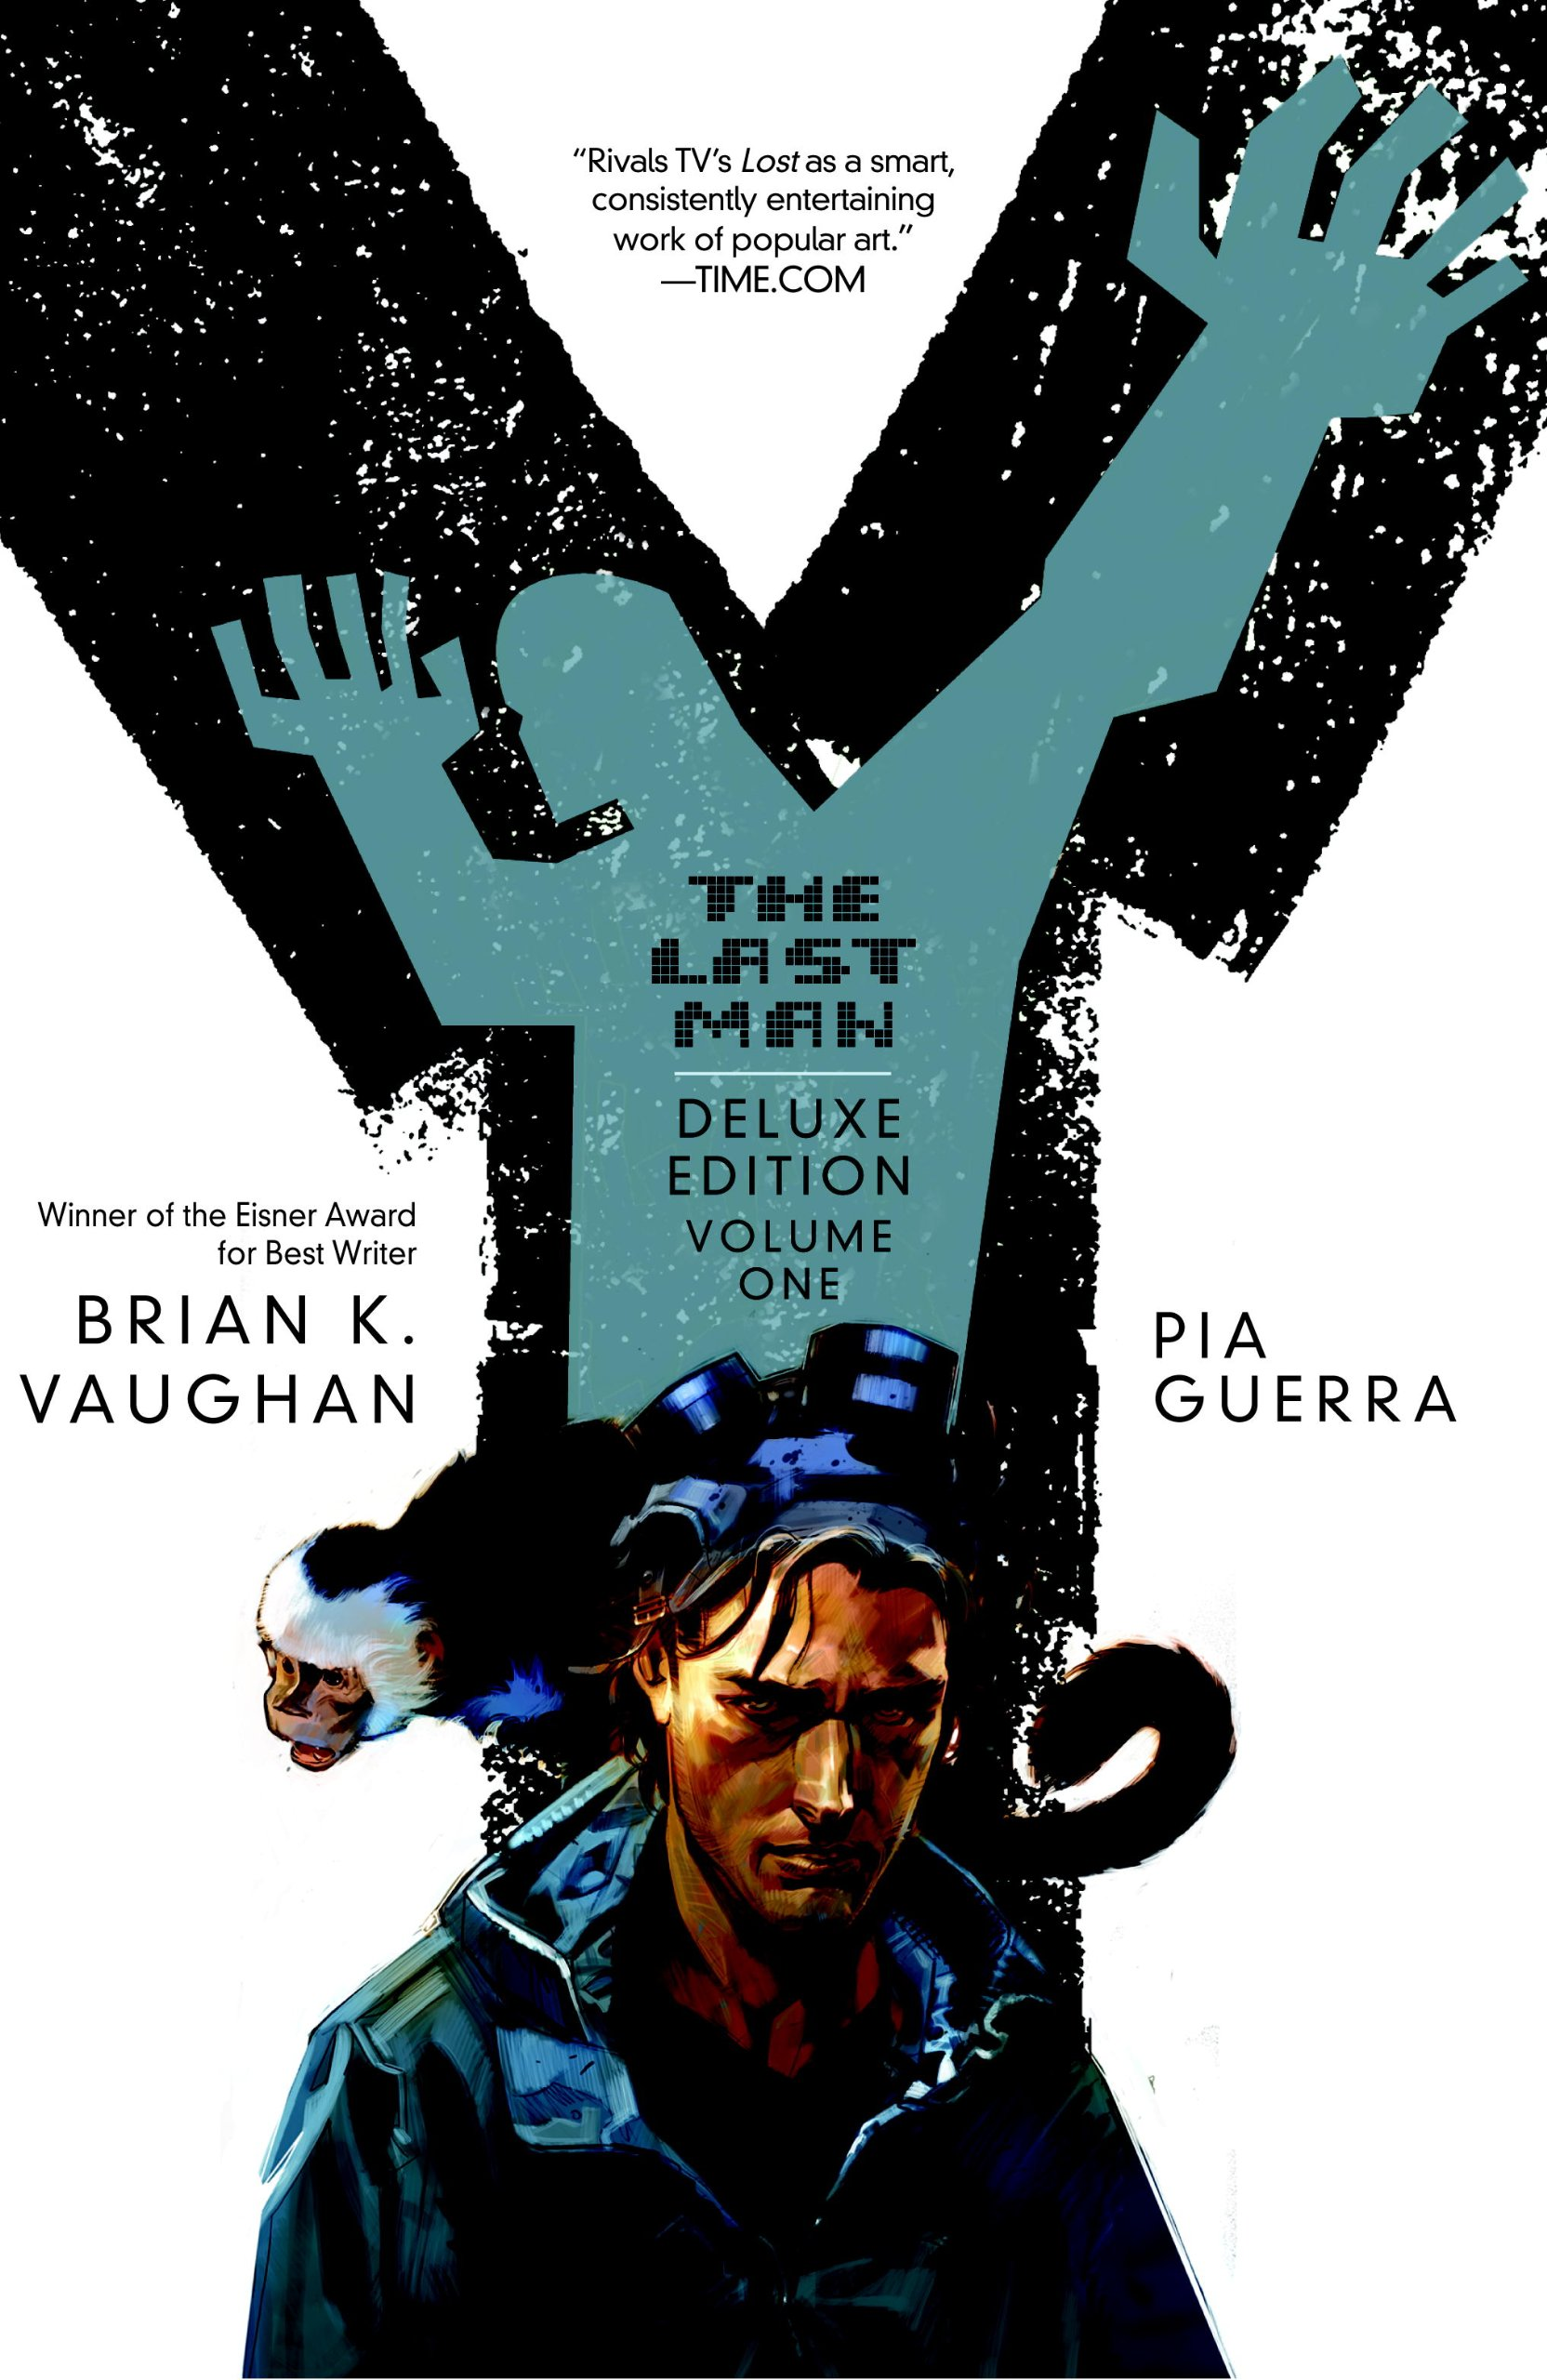 y the last man Find and save ideas about y the last man on pinterest | see more ideas about pride and prejudice, face the music and freddie mercury last song.